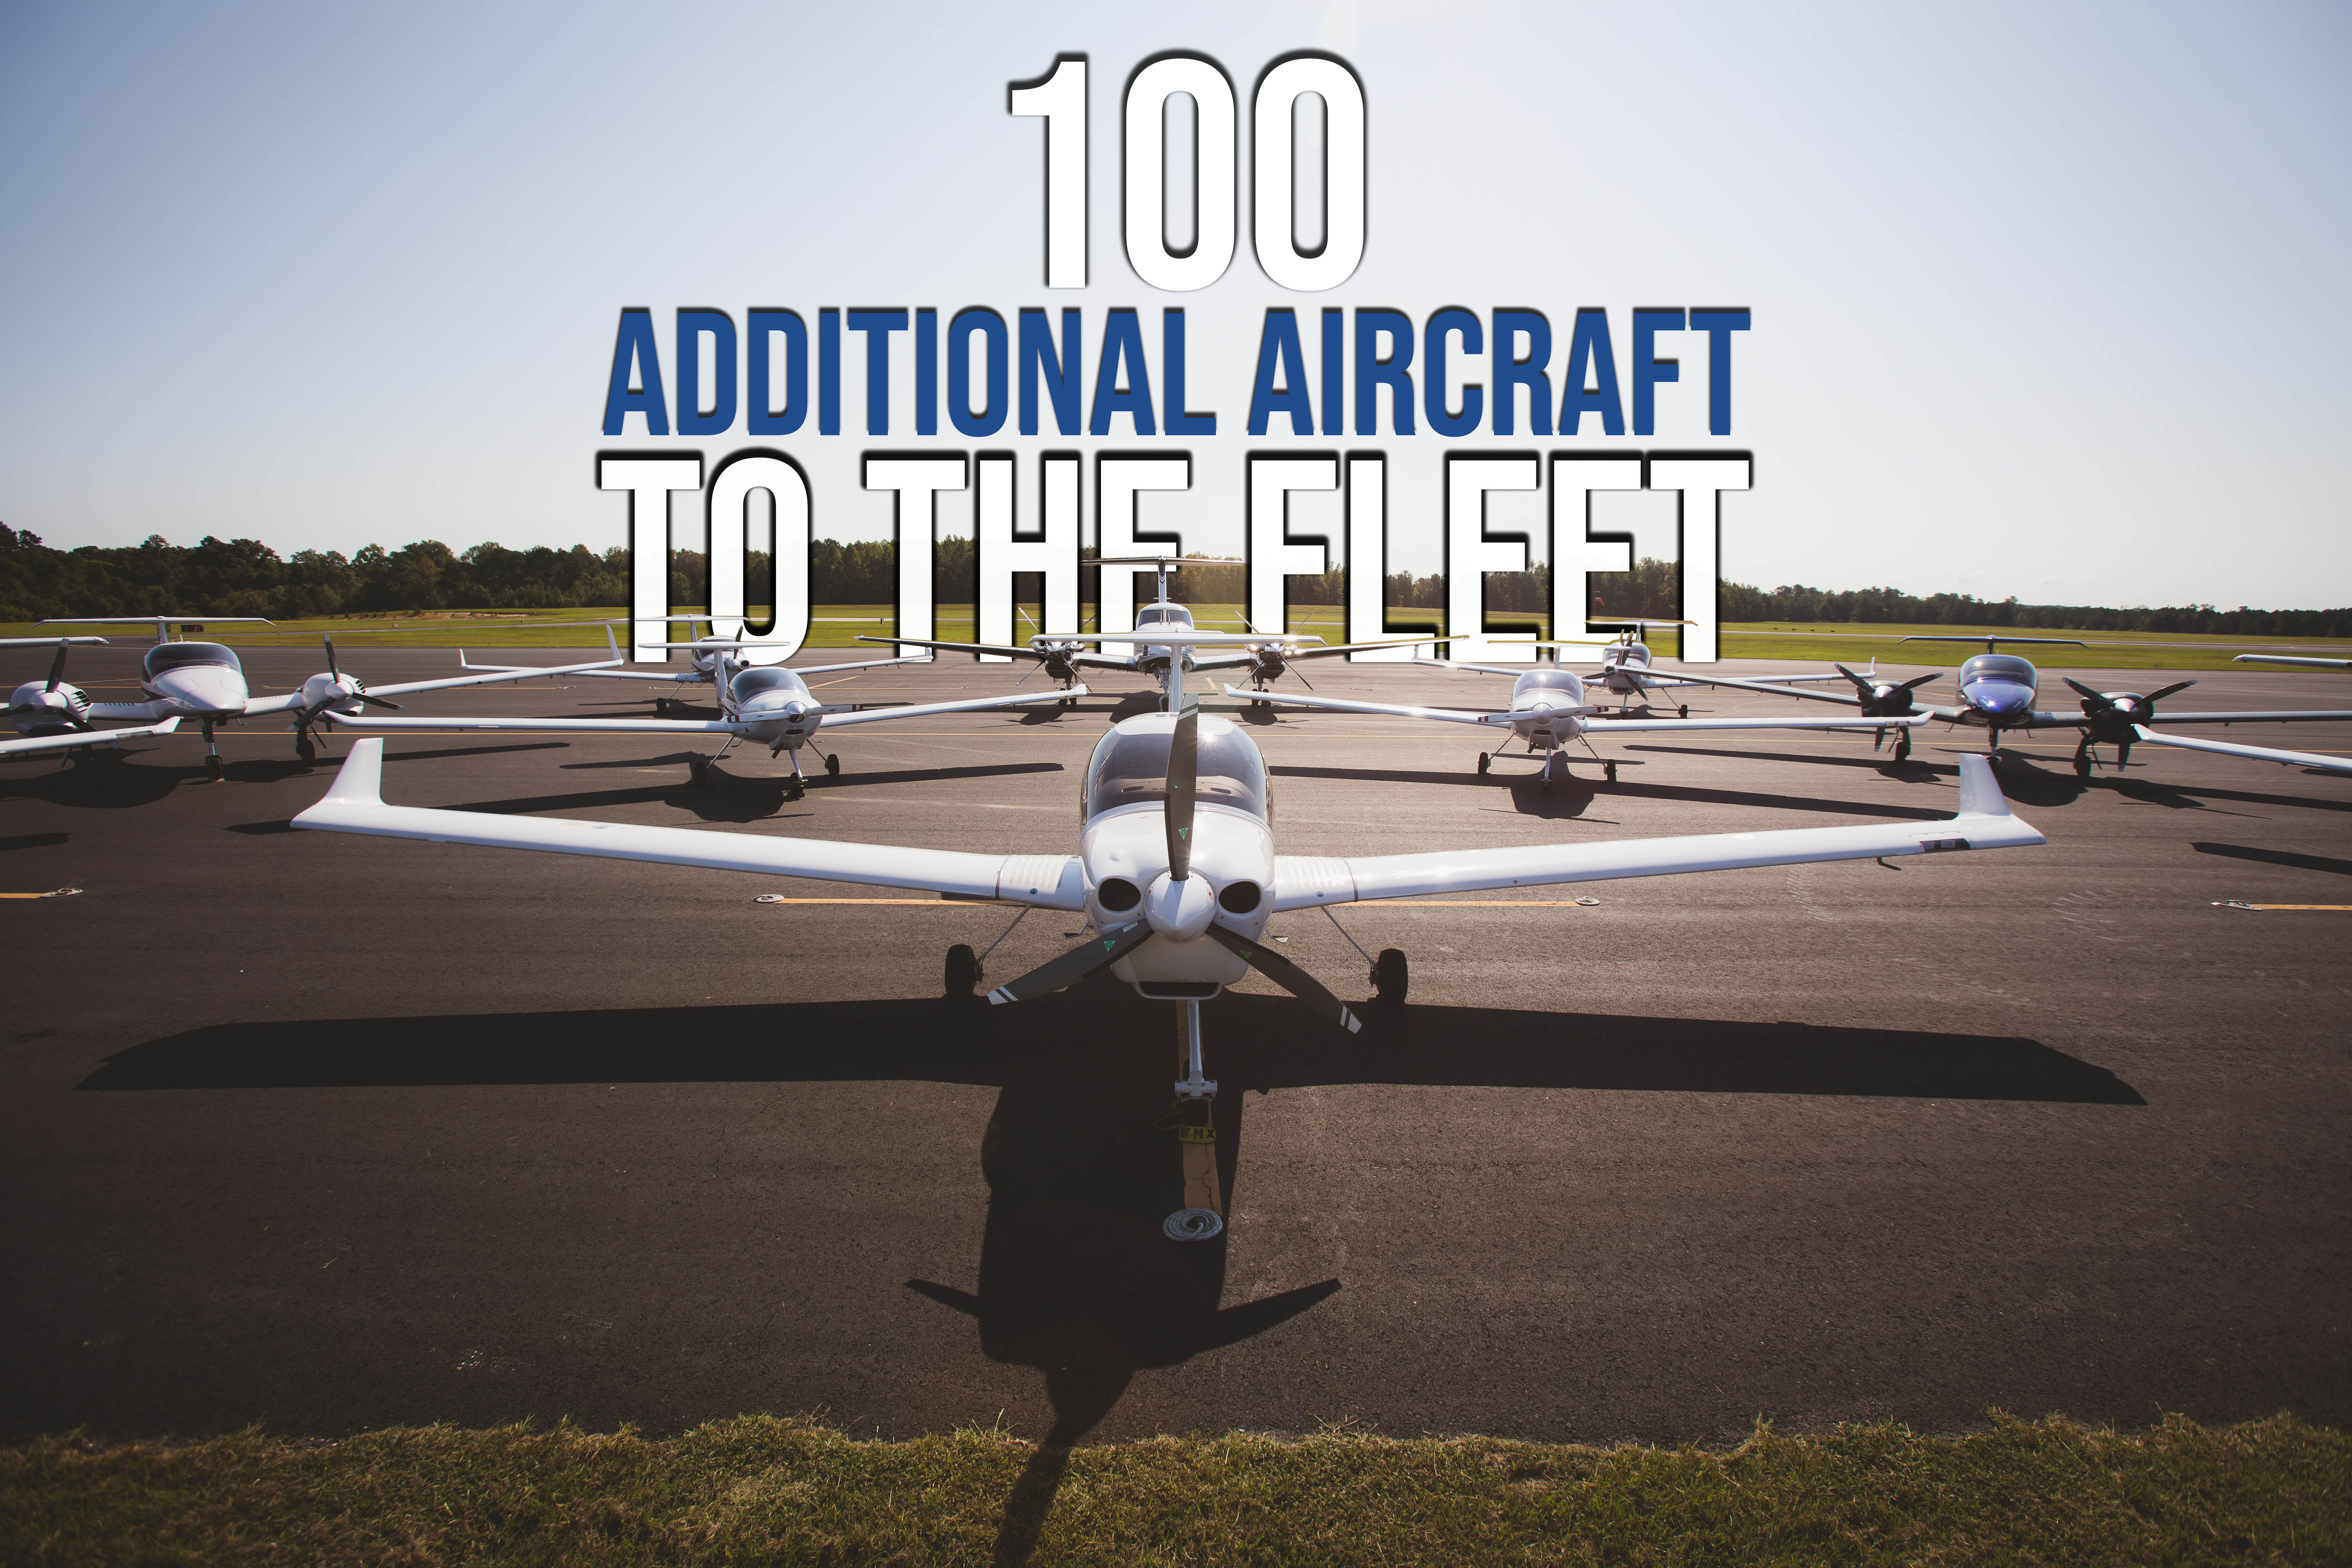 100-Aircraft-Diamond-Press-Release-IG-Post-low